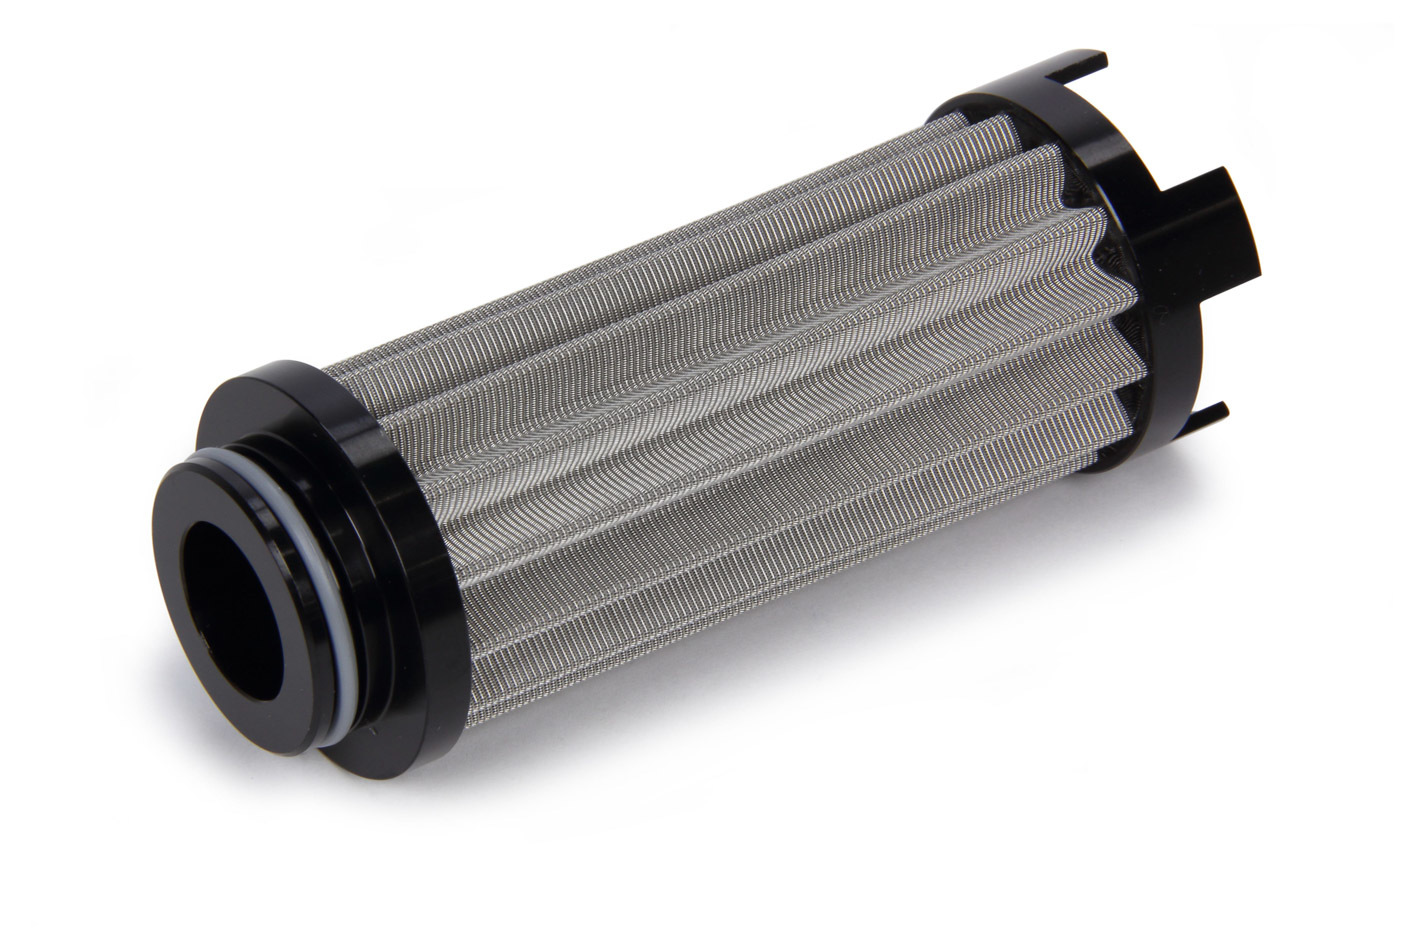 Ti22 Performance 5520 Fuel Filter Element, 100 Micron, Stainless Element, Replacement, Ti22 Fuel Filters, Each